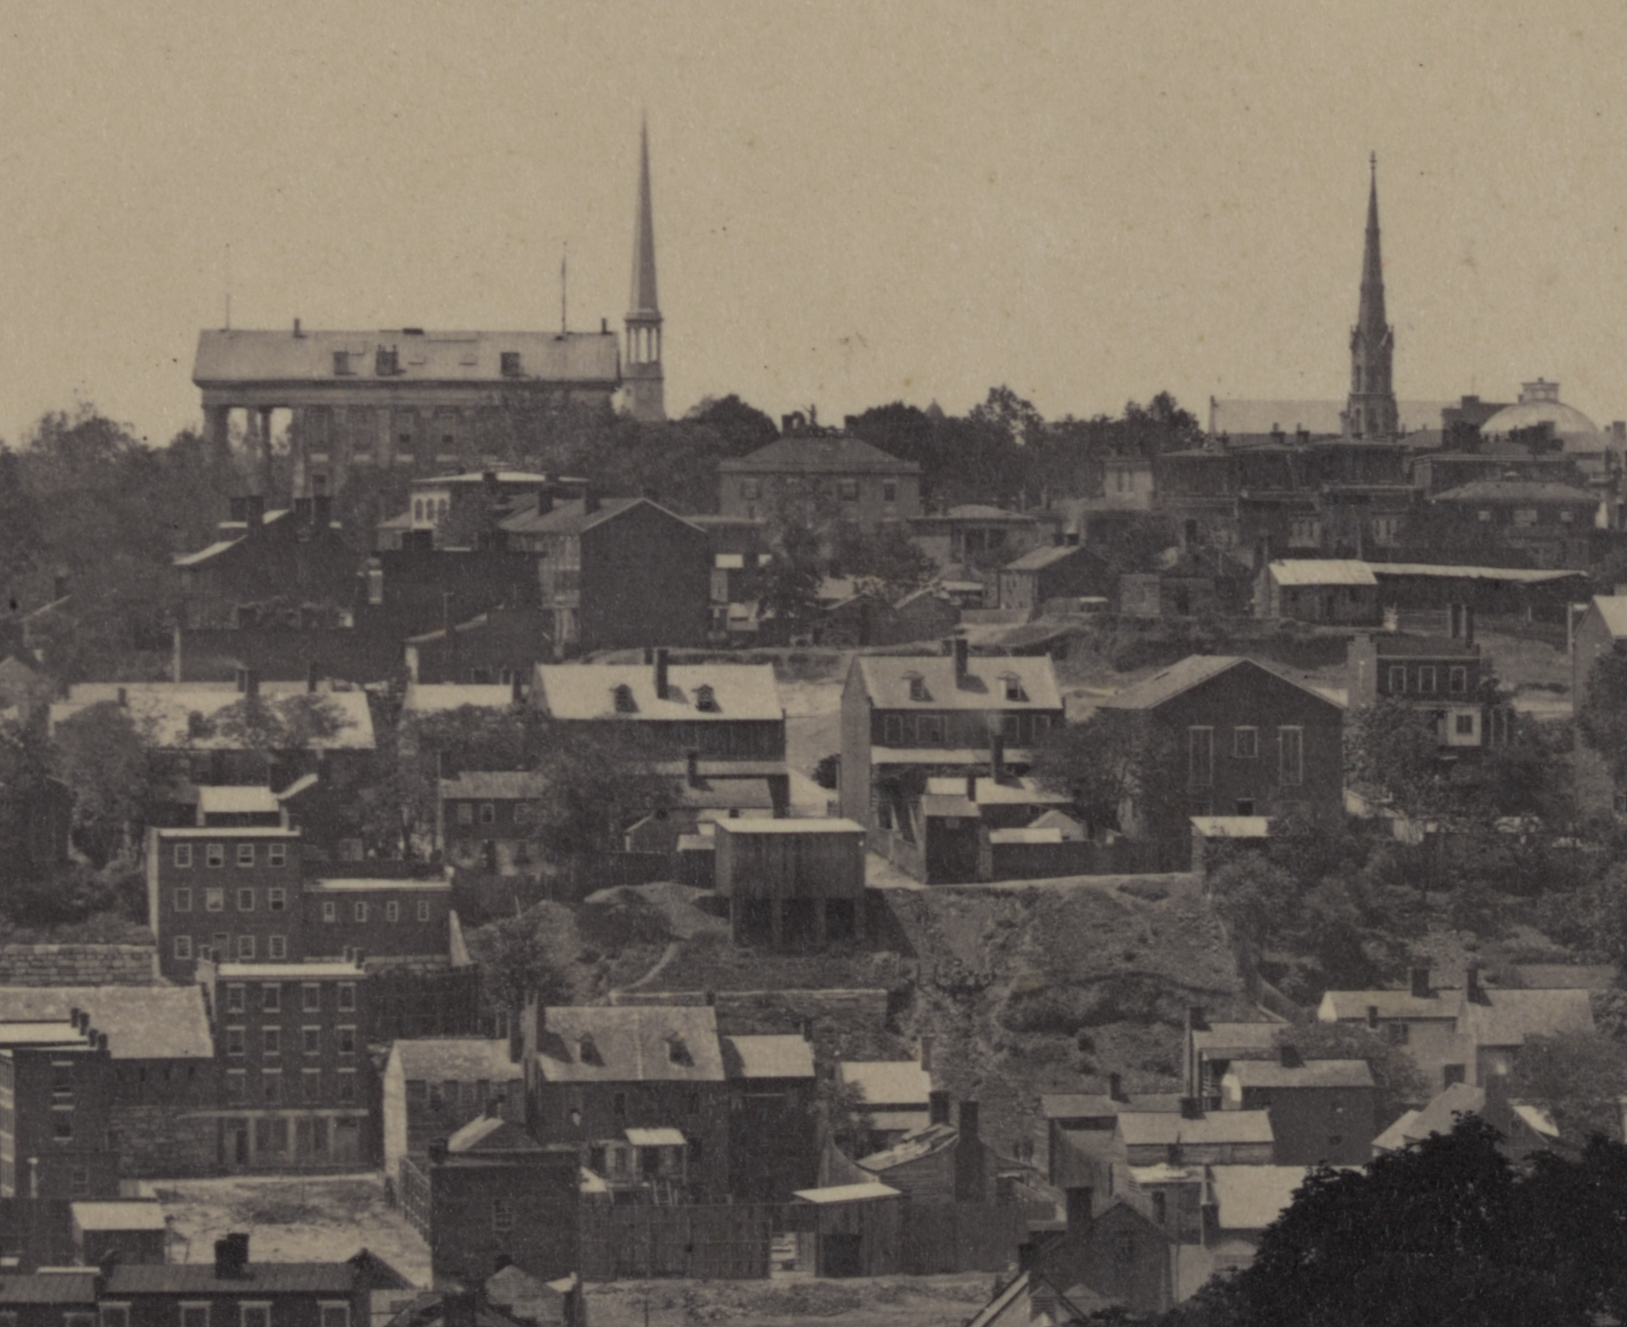 Richmond in 1865. Lumpkin's Jail is in the lower right.